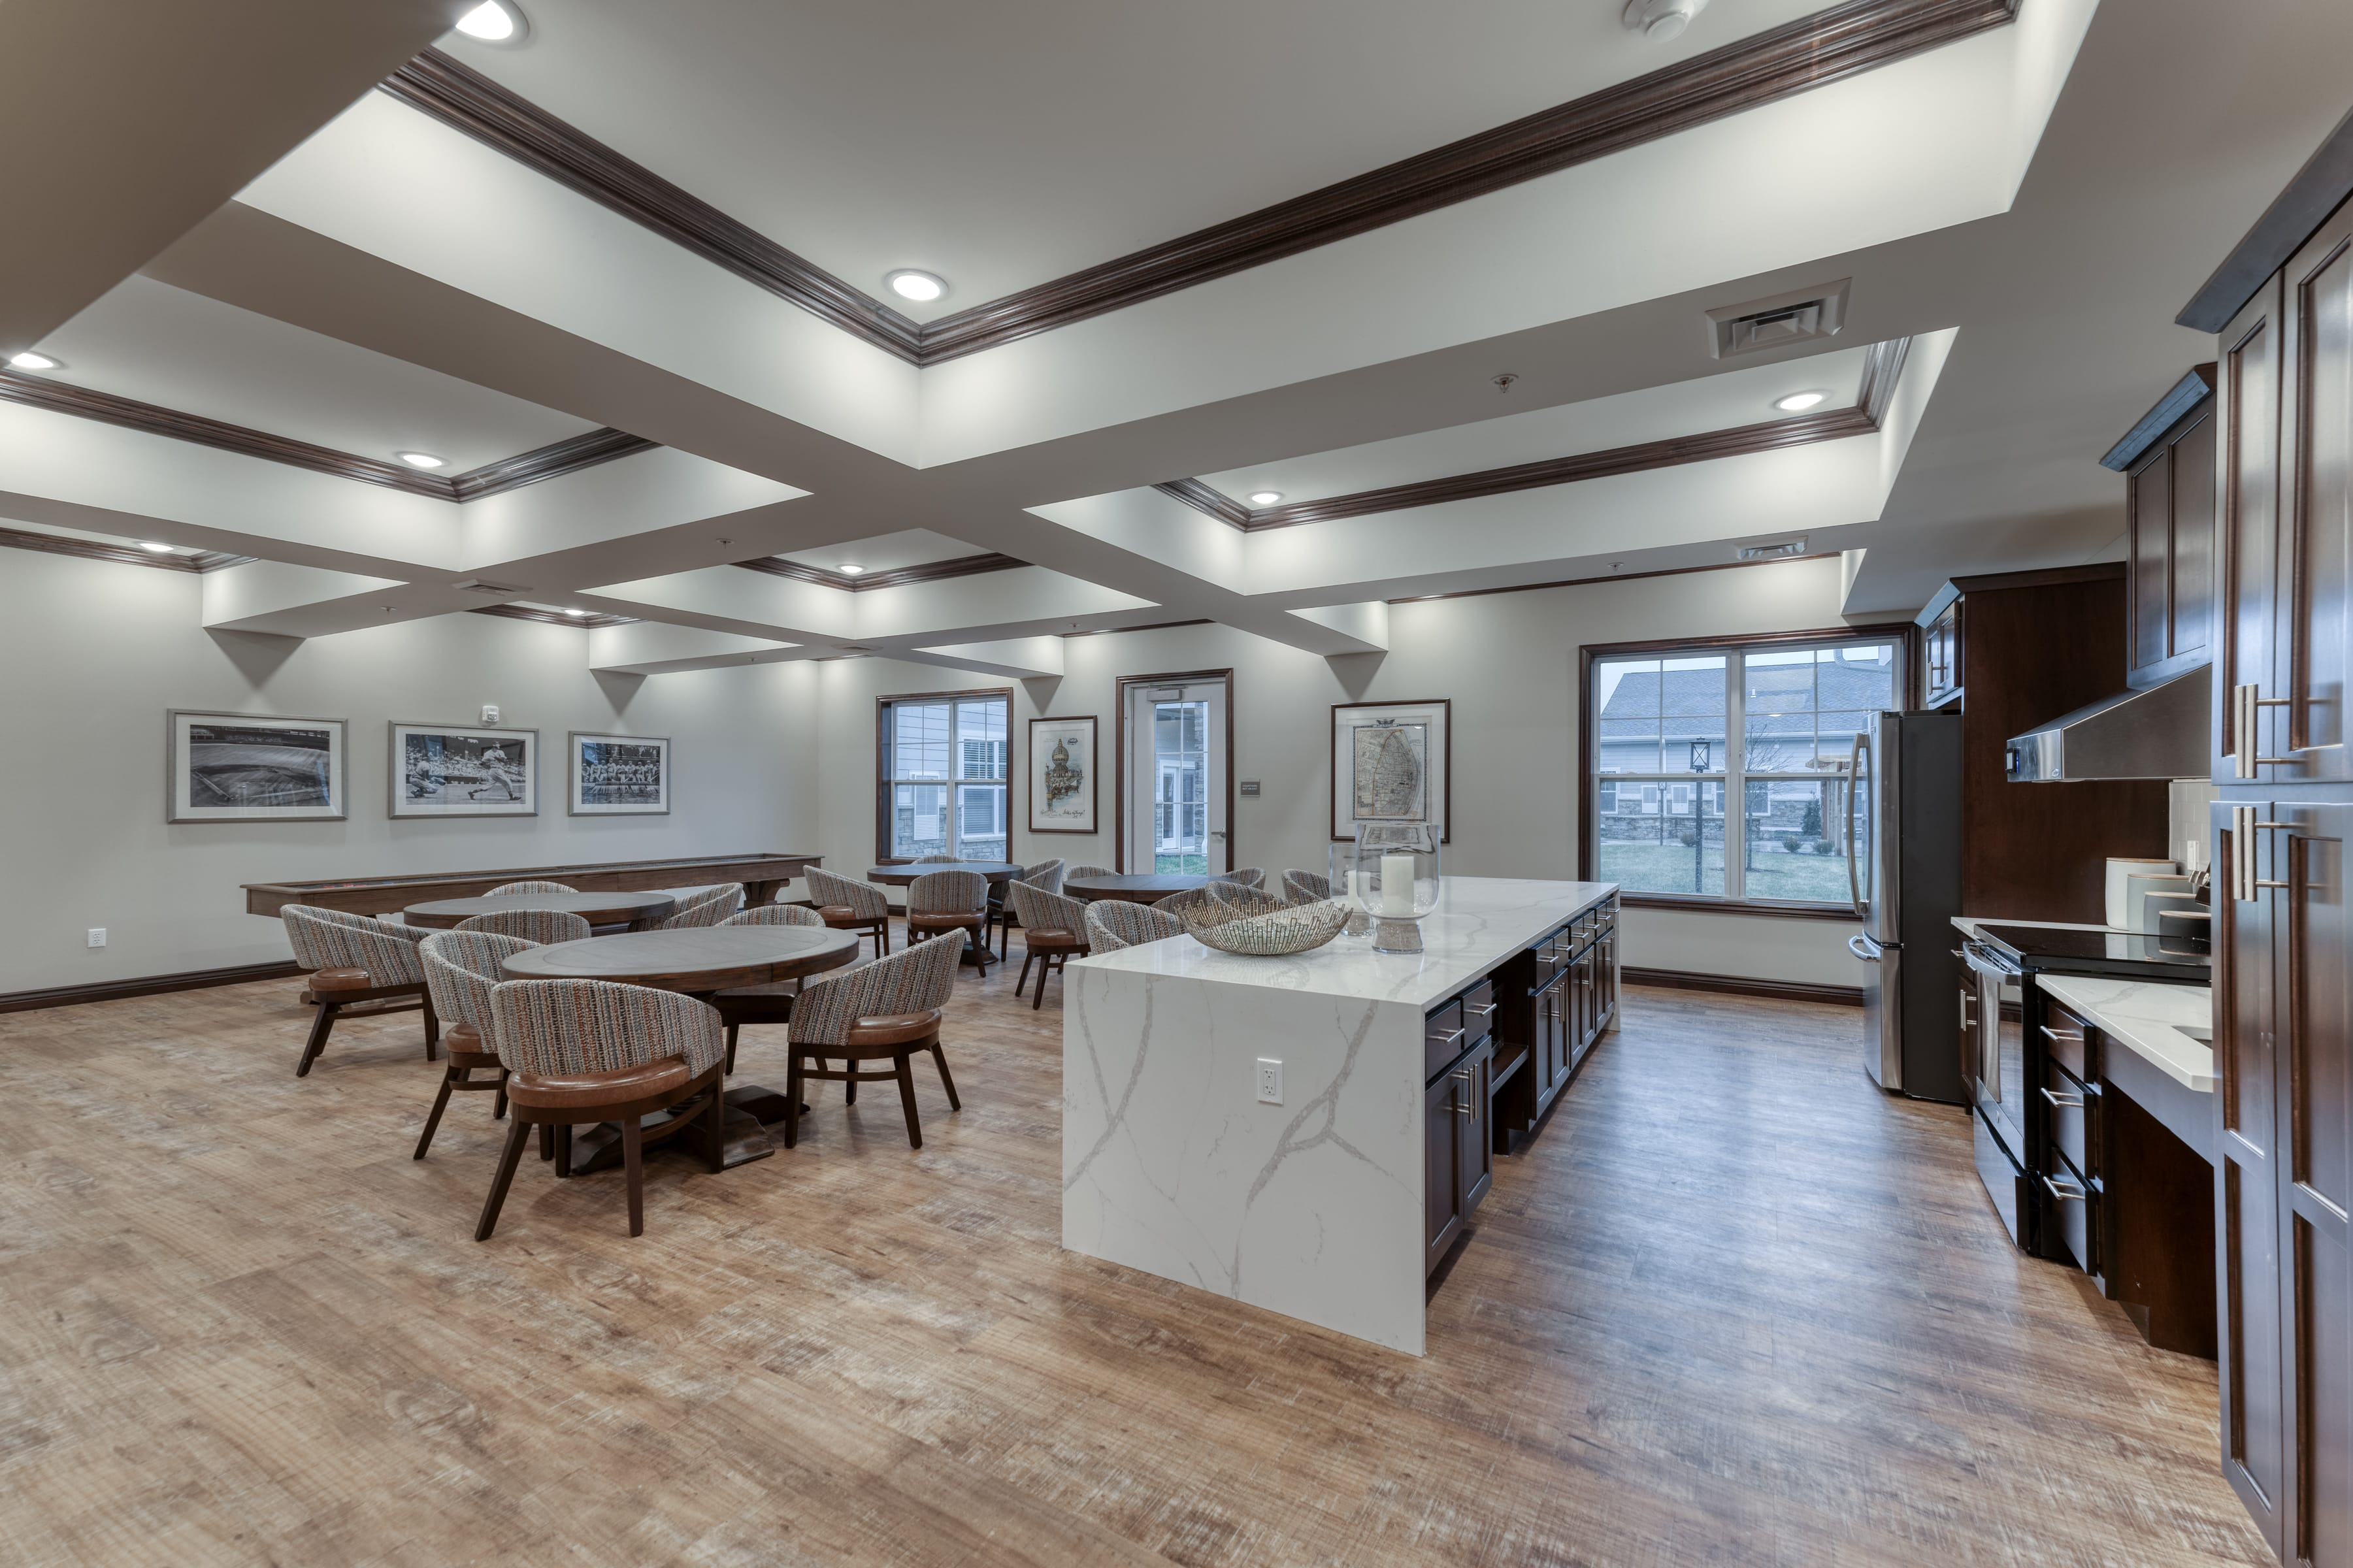 Round tables in this community room encourage residents to dine, socialize, or play games